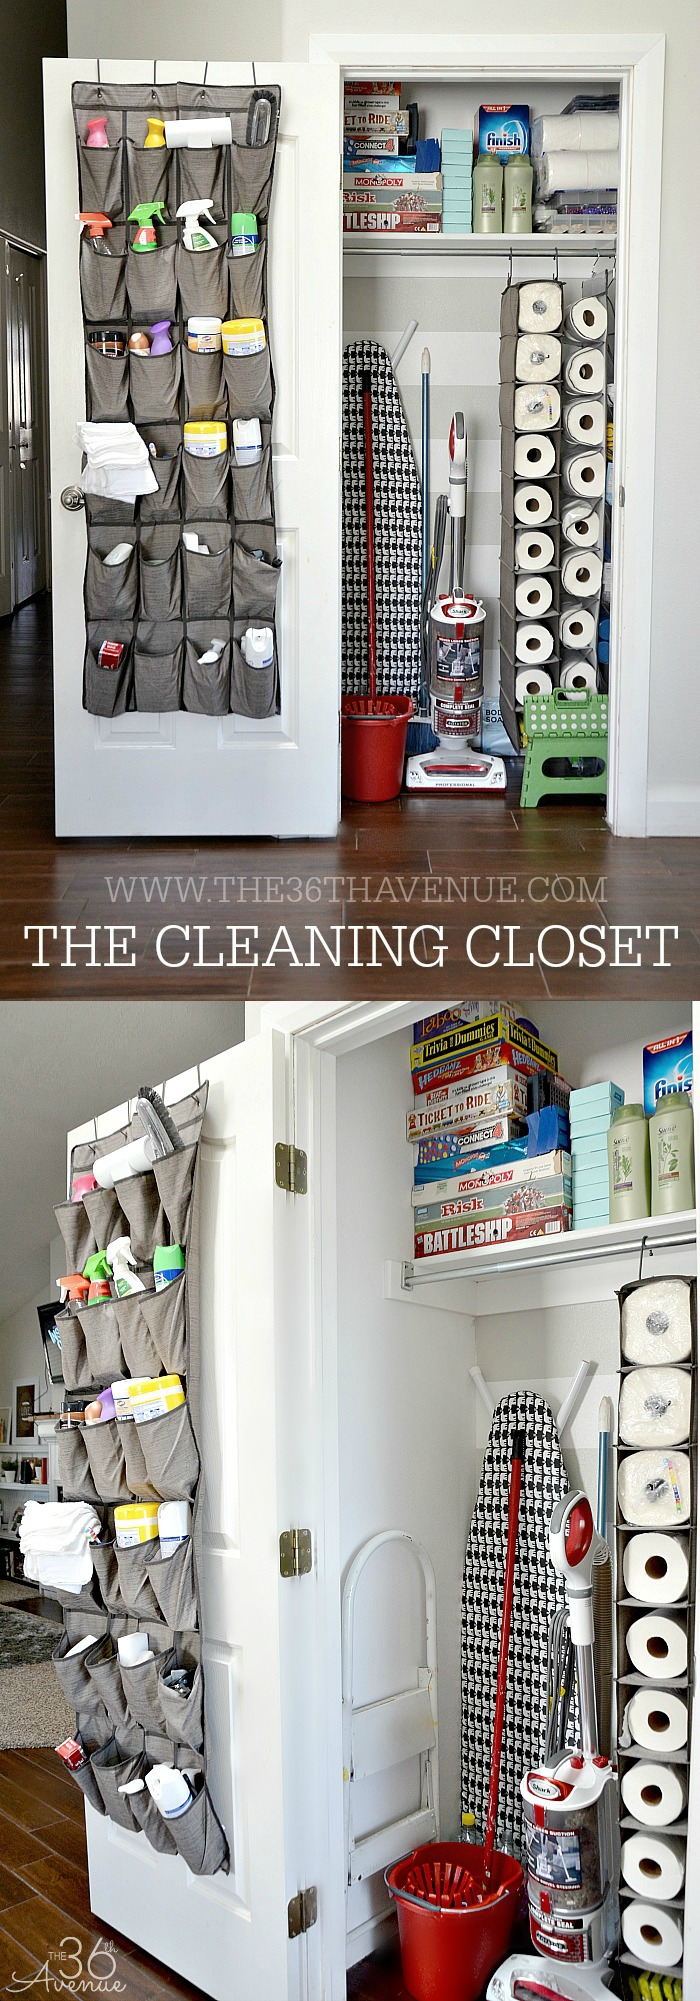 Shoebags are a great way to add organization to the home